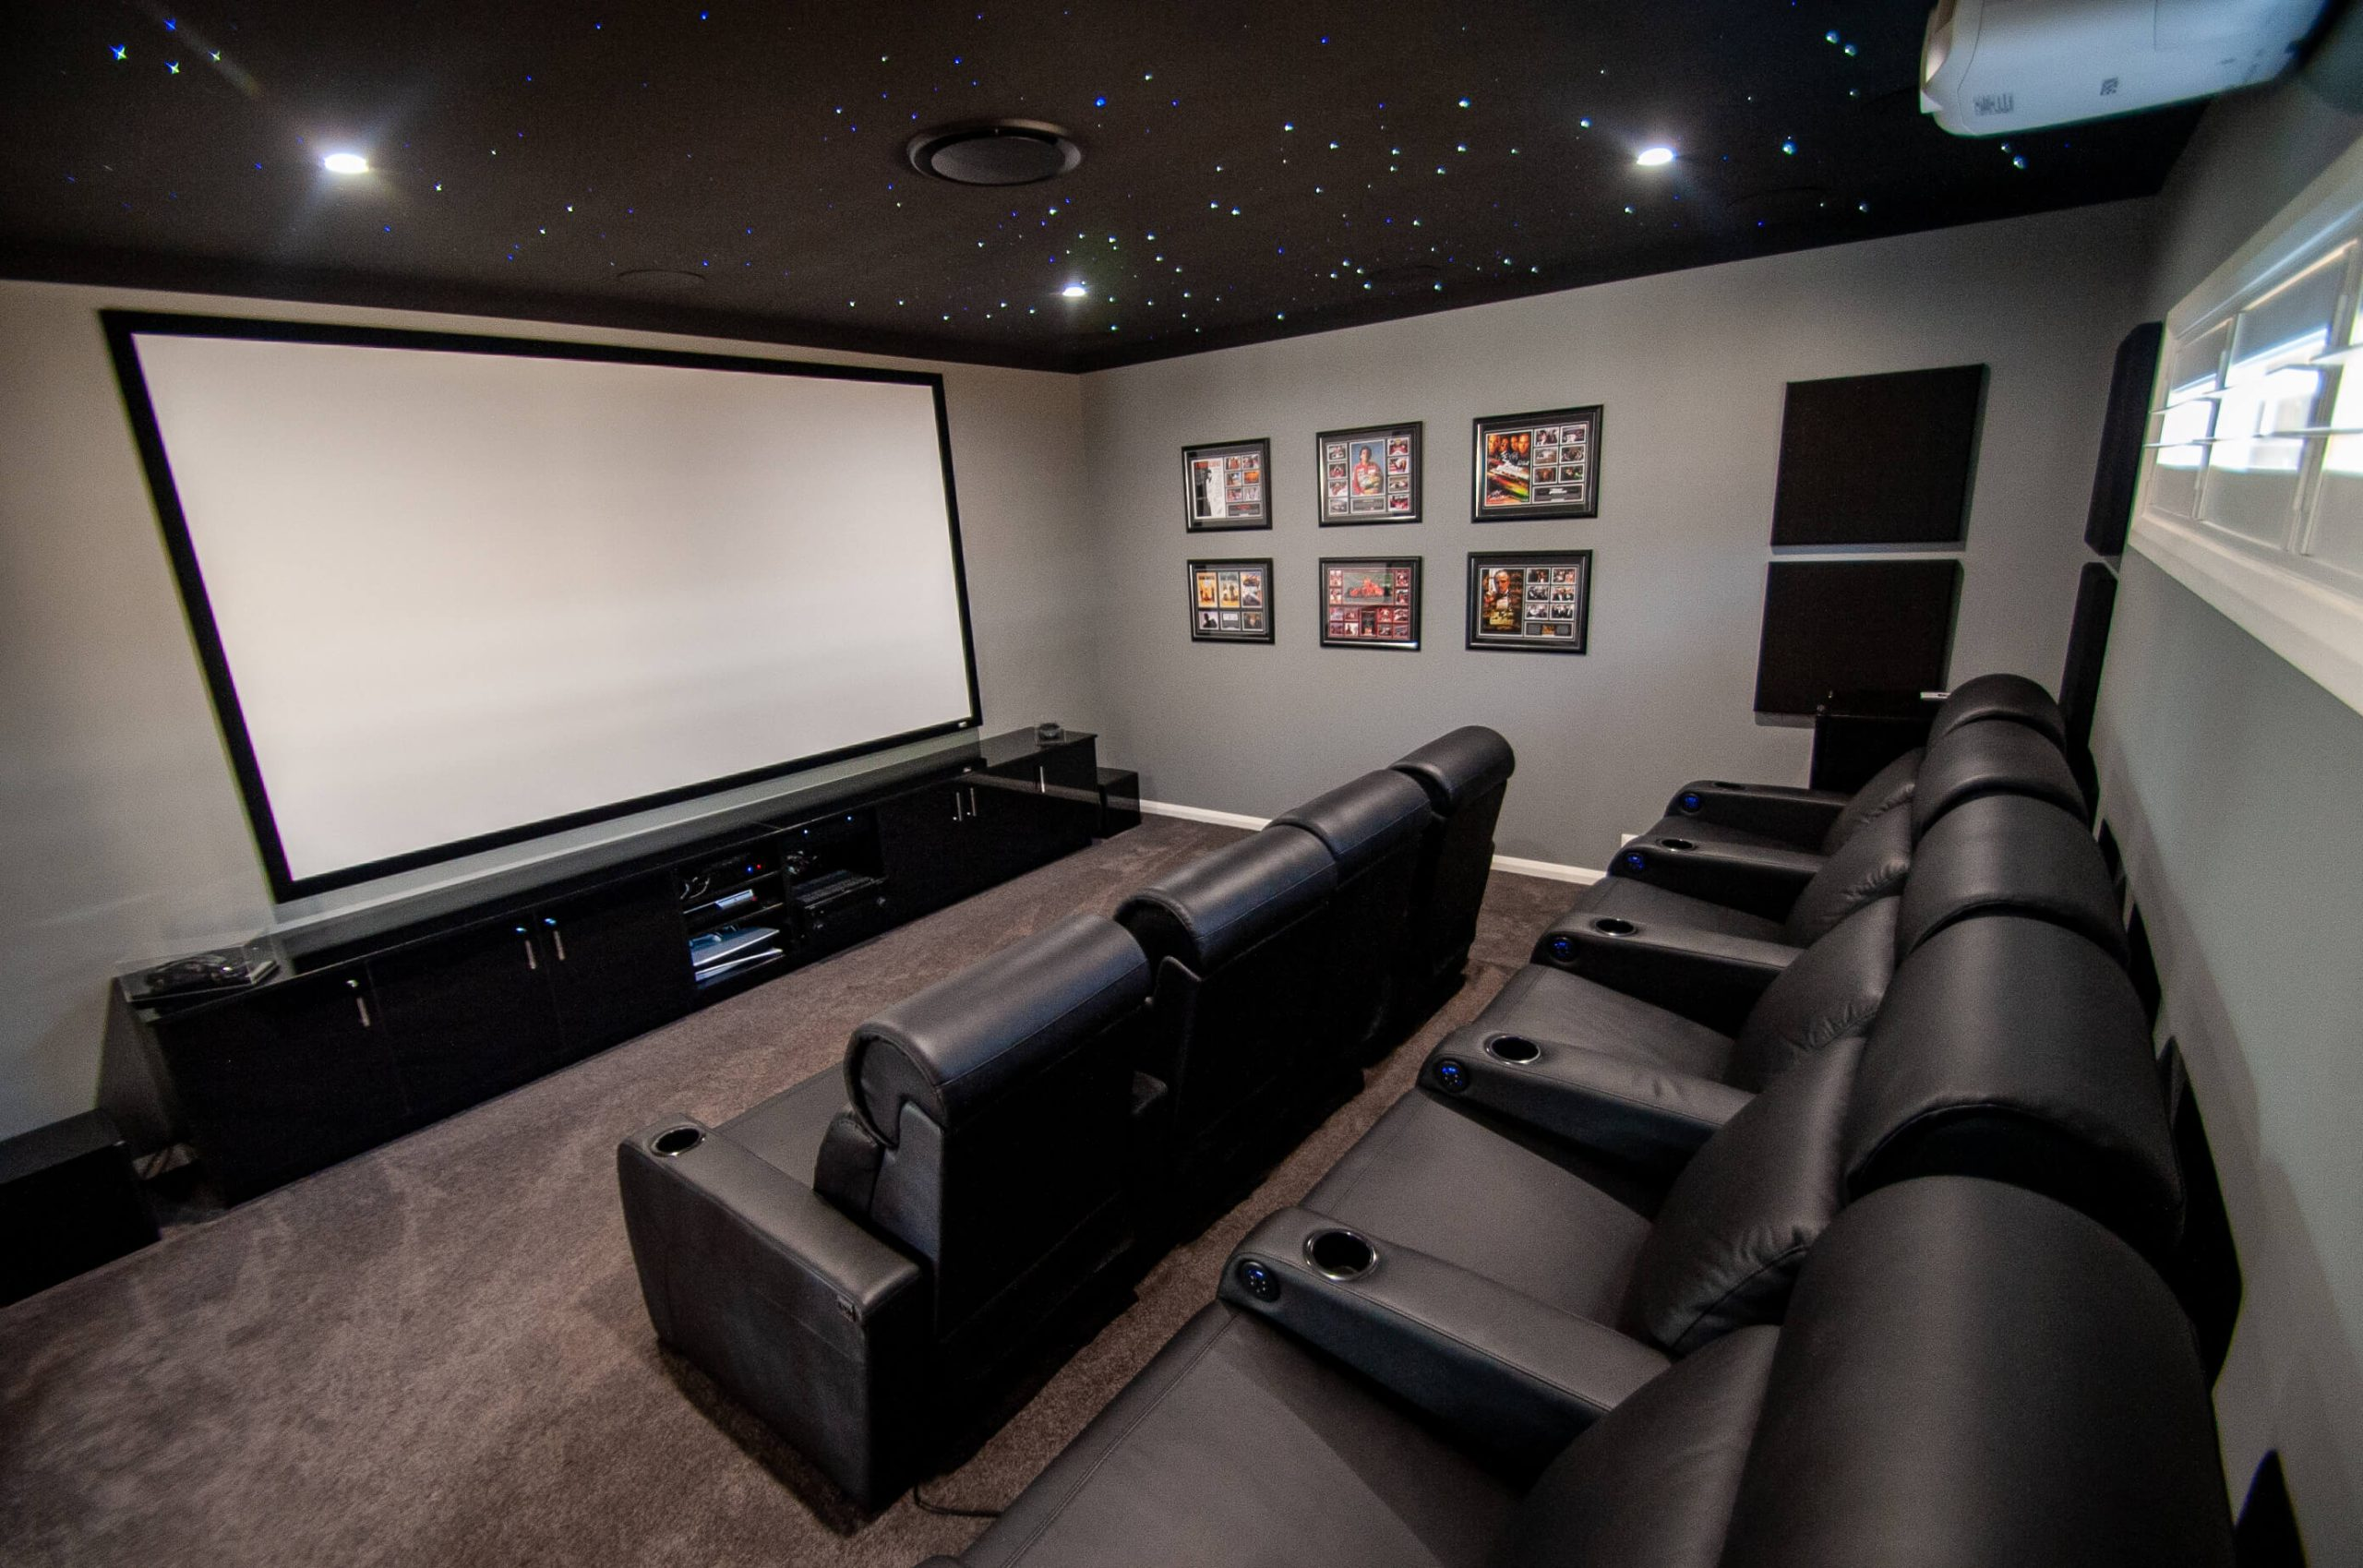 Riverina Home Gets Cinema Room To Die For With Full Cinema-Style Seating & Star Ceiling